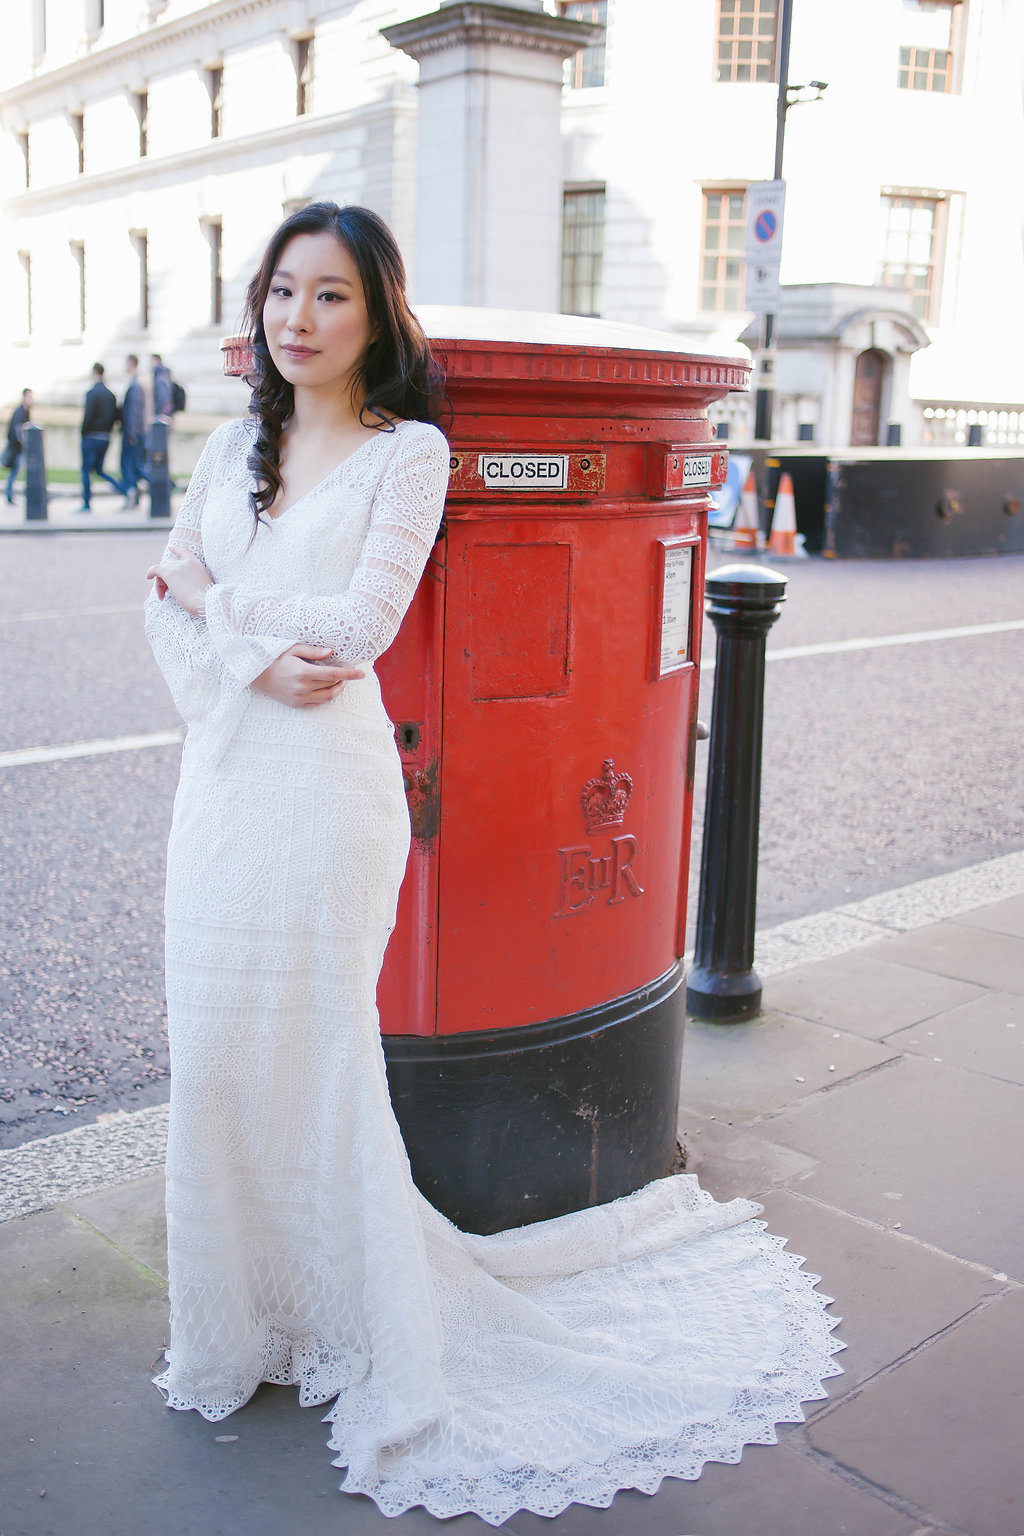 Nina Pang Photography - City Bride - London wedding - City wedding - Chinese wedding 3